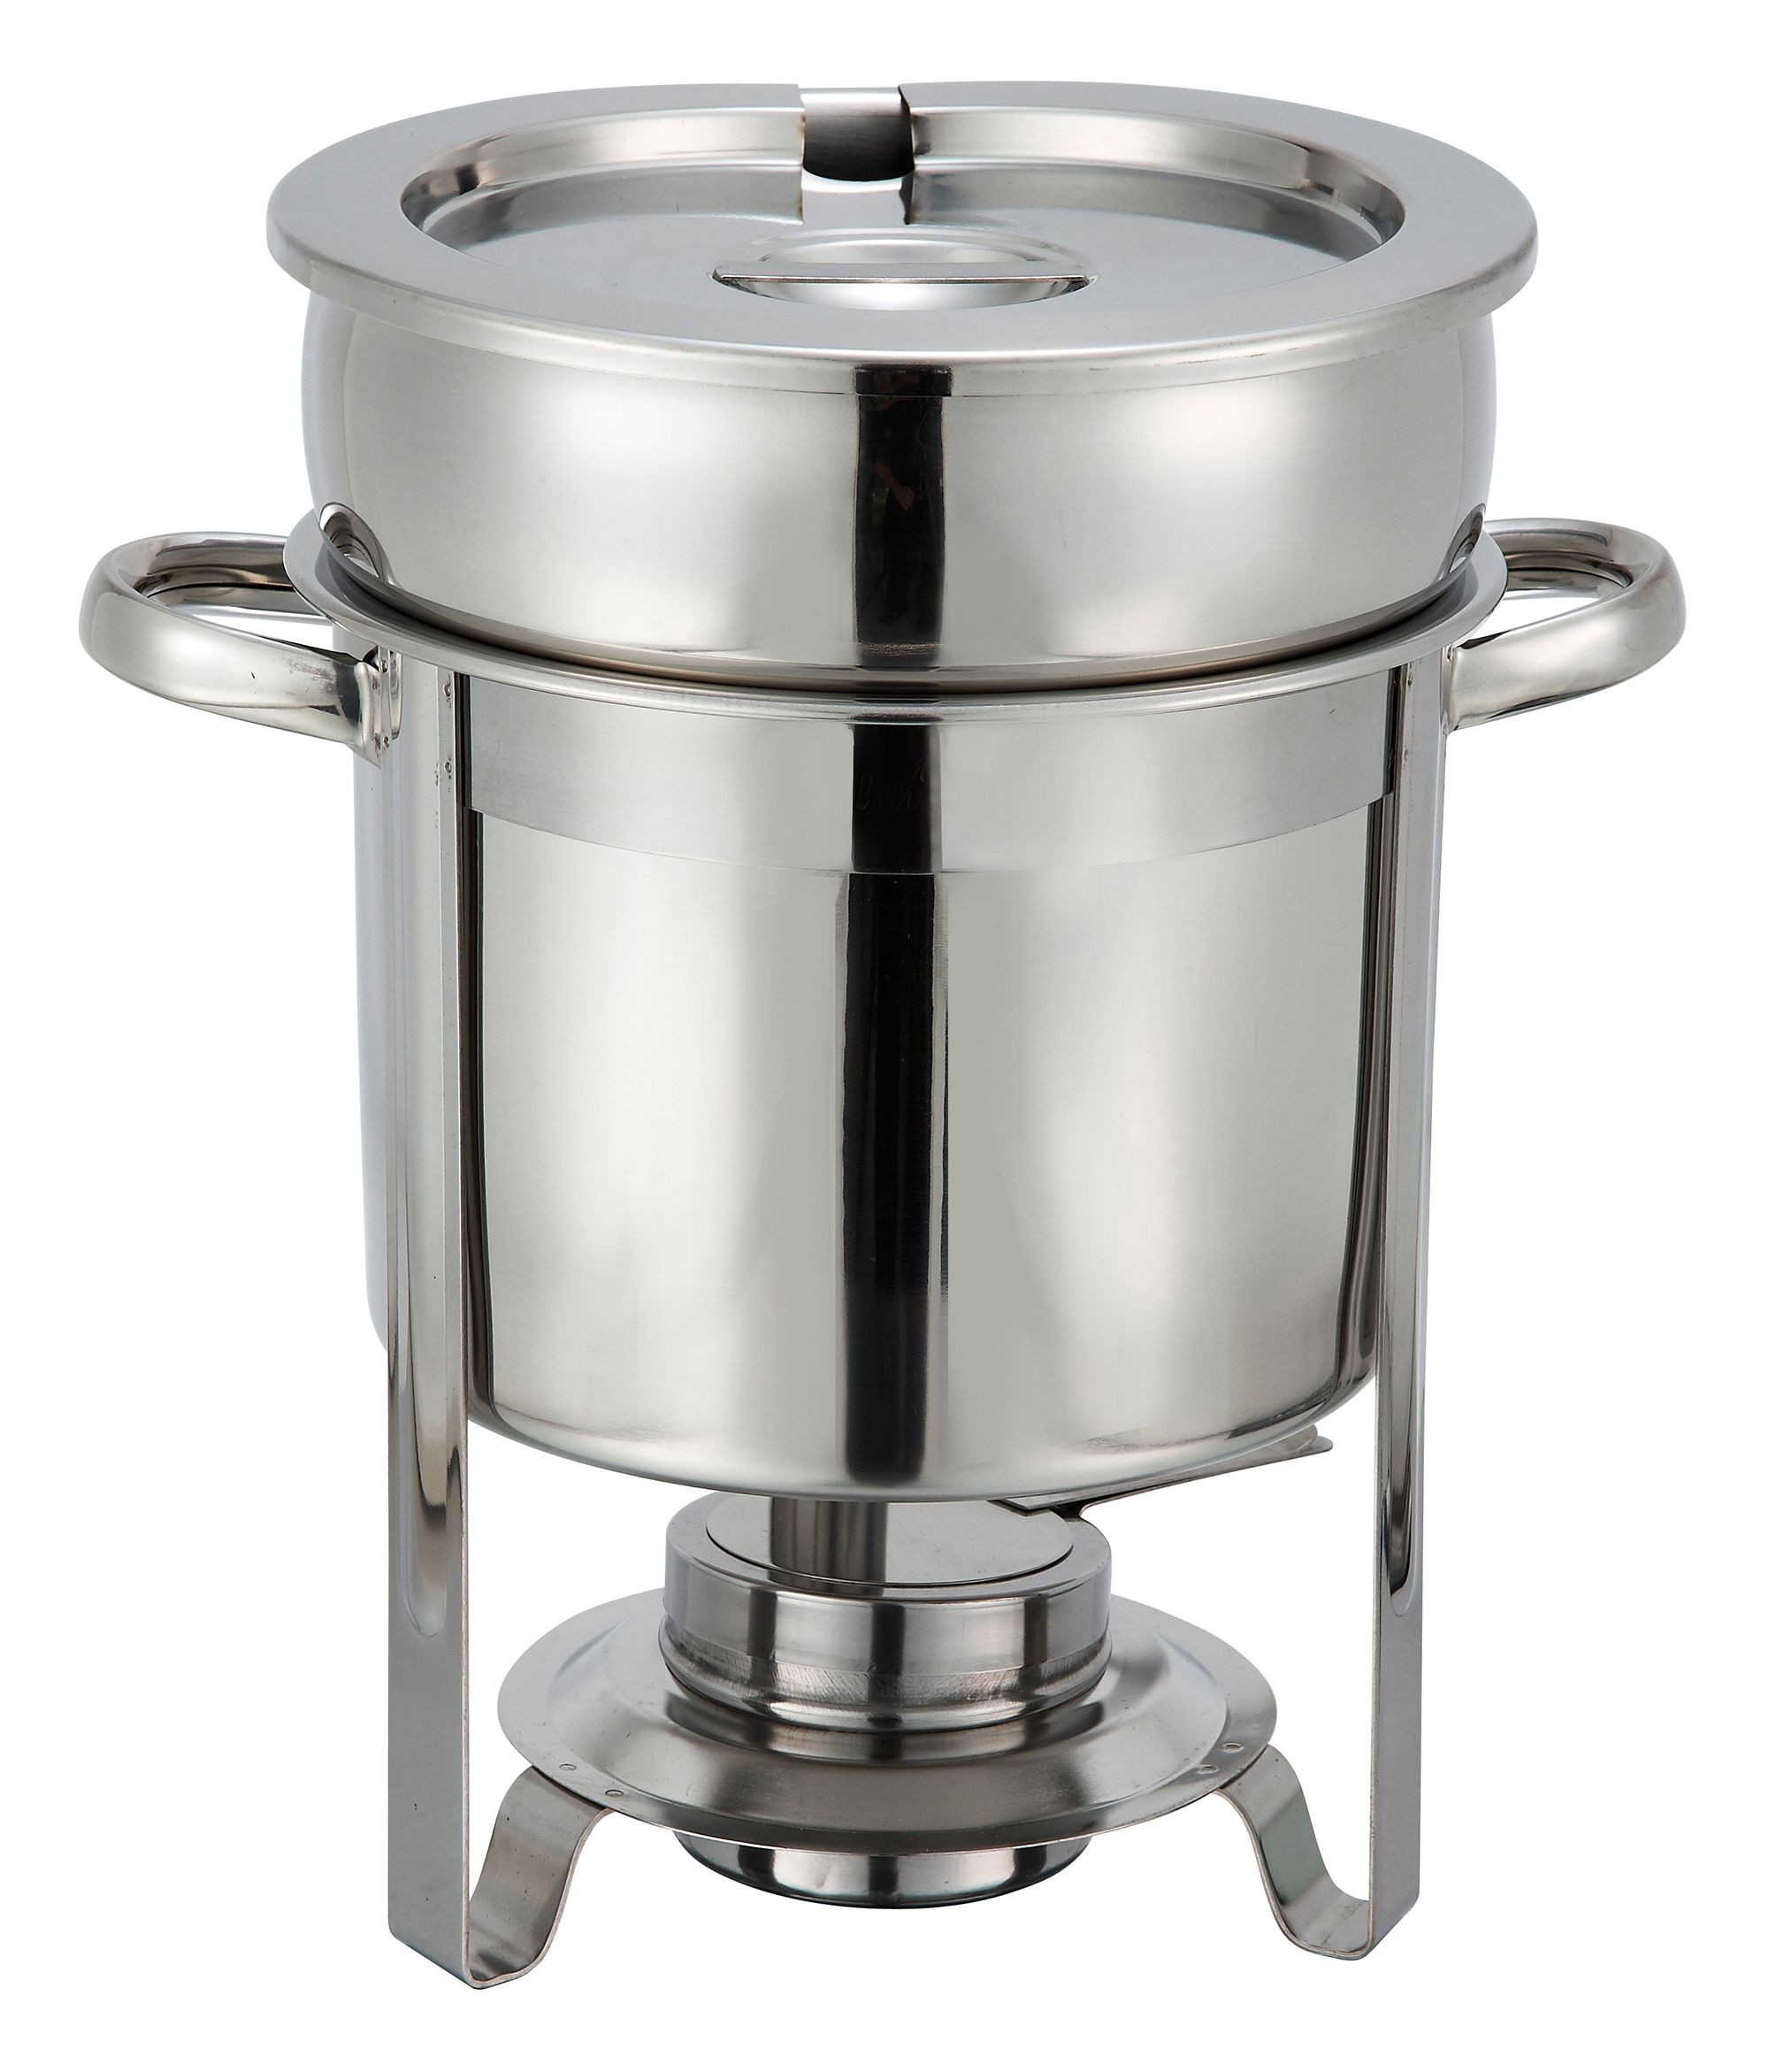 Deluxe Stainless Steel Soup Chafer 7 Qt